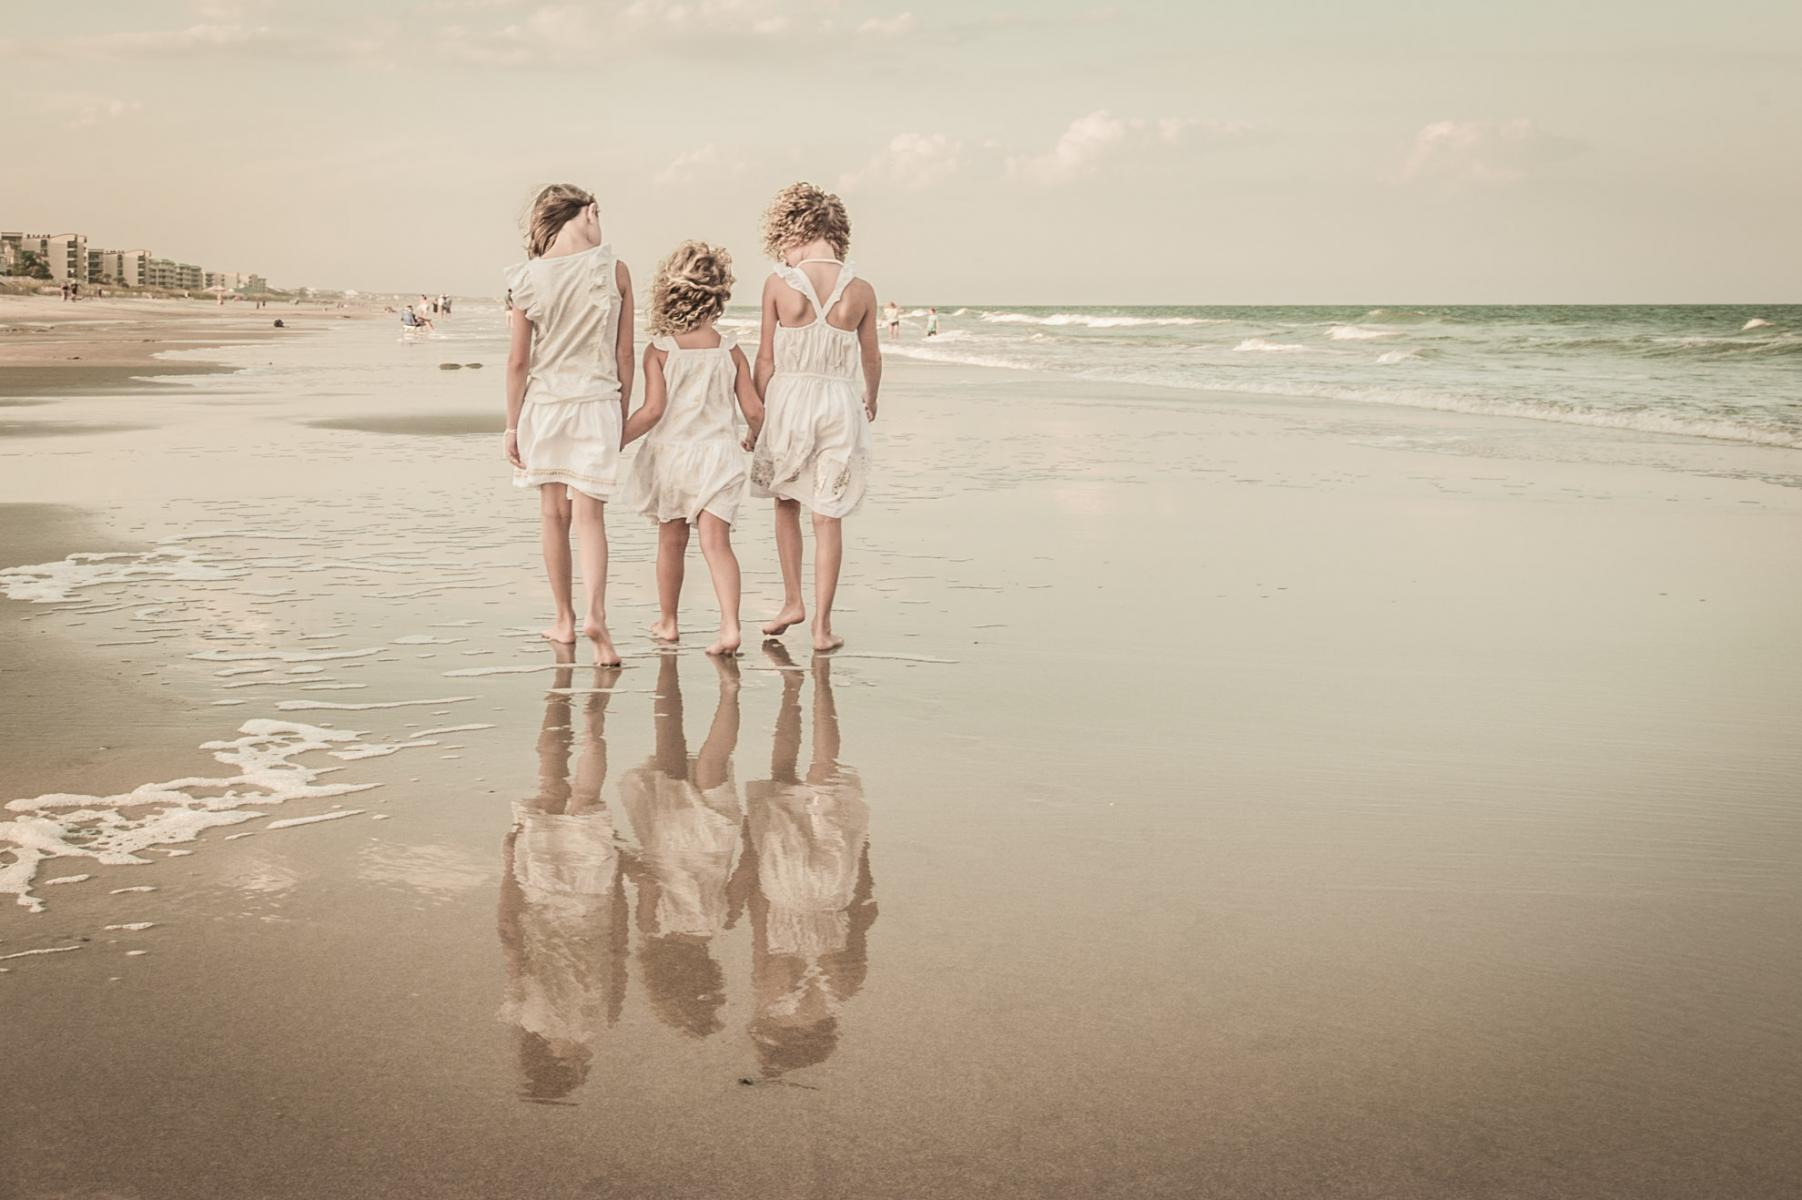 We Three Sisters